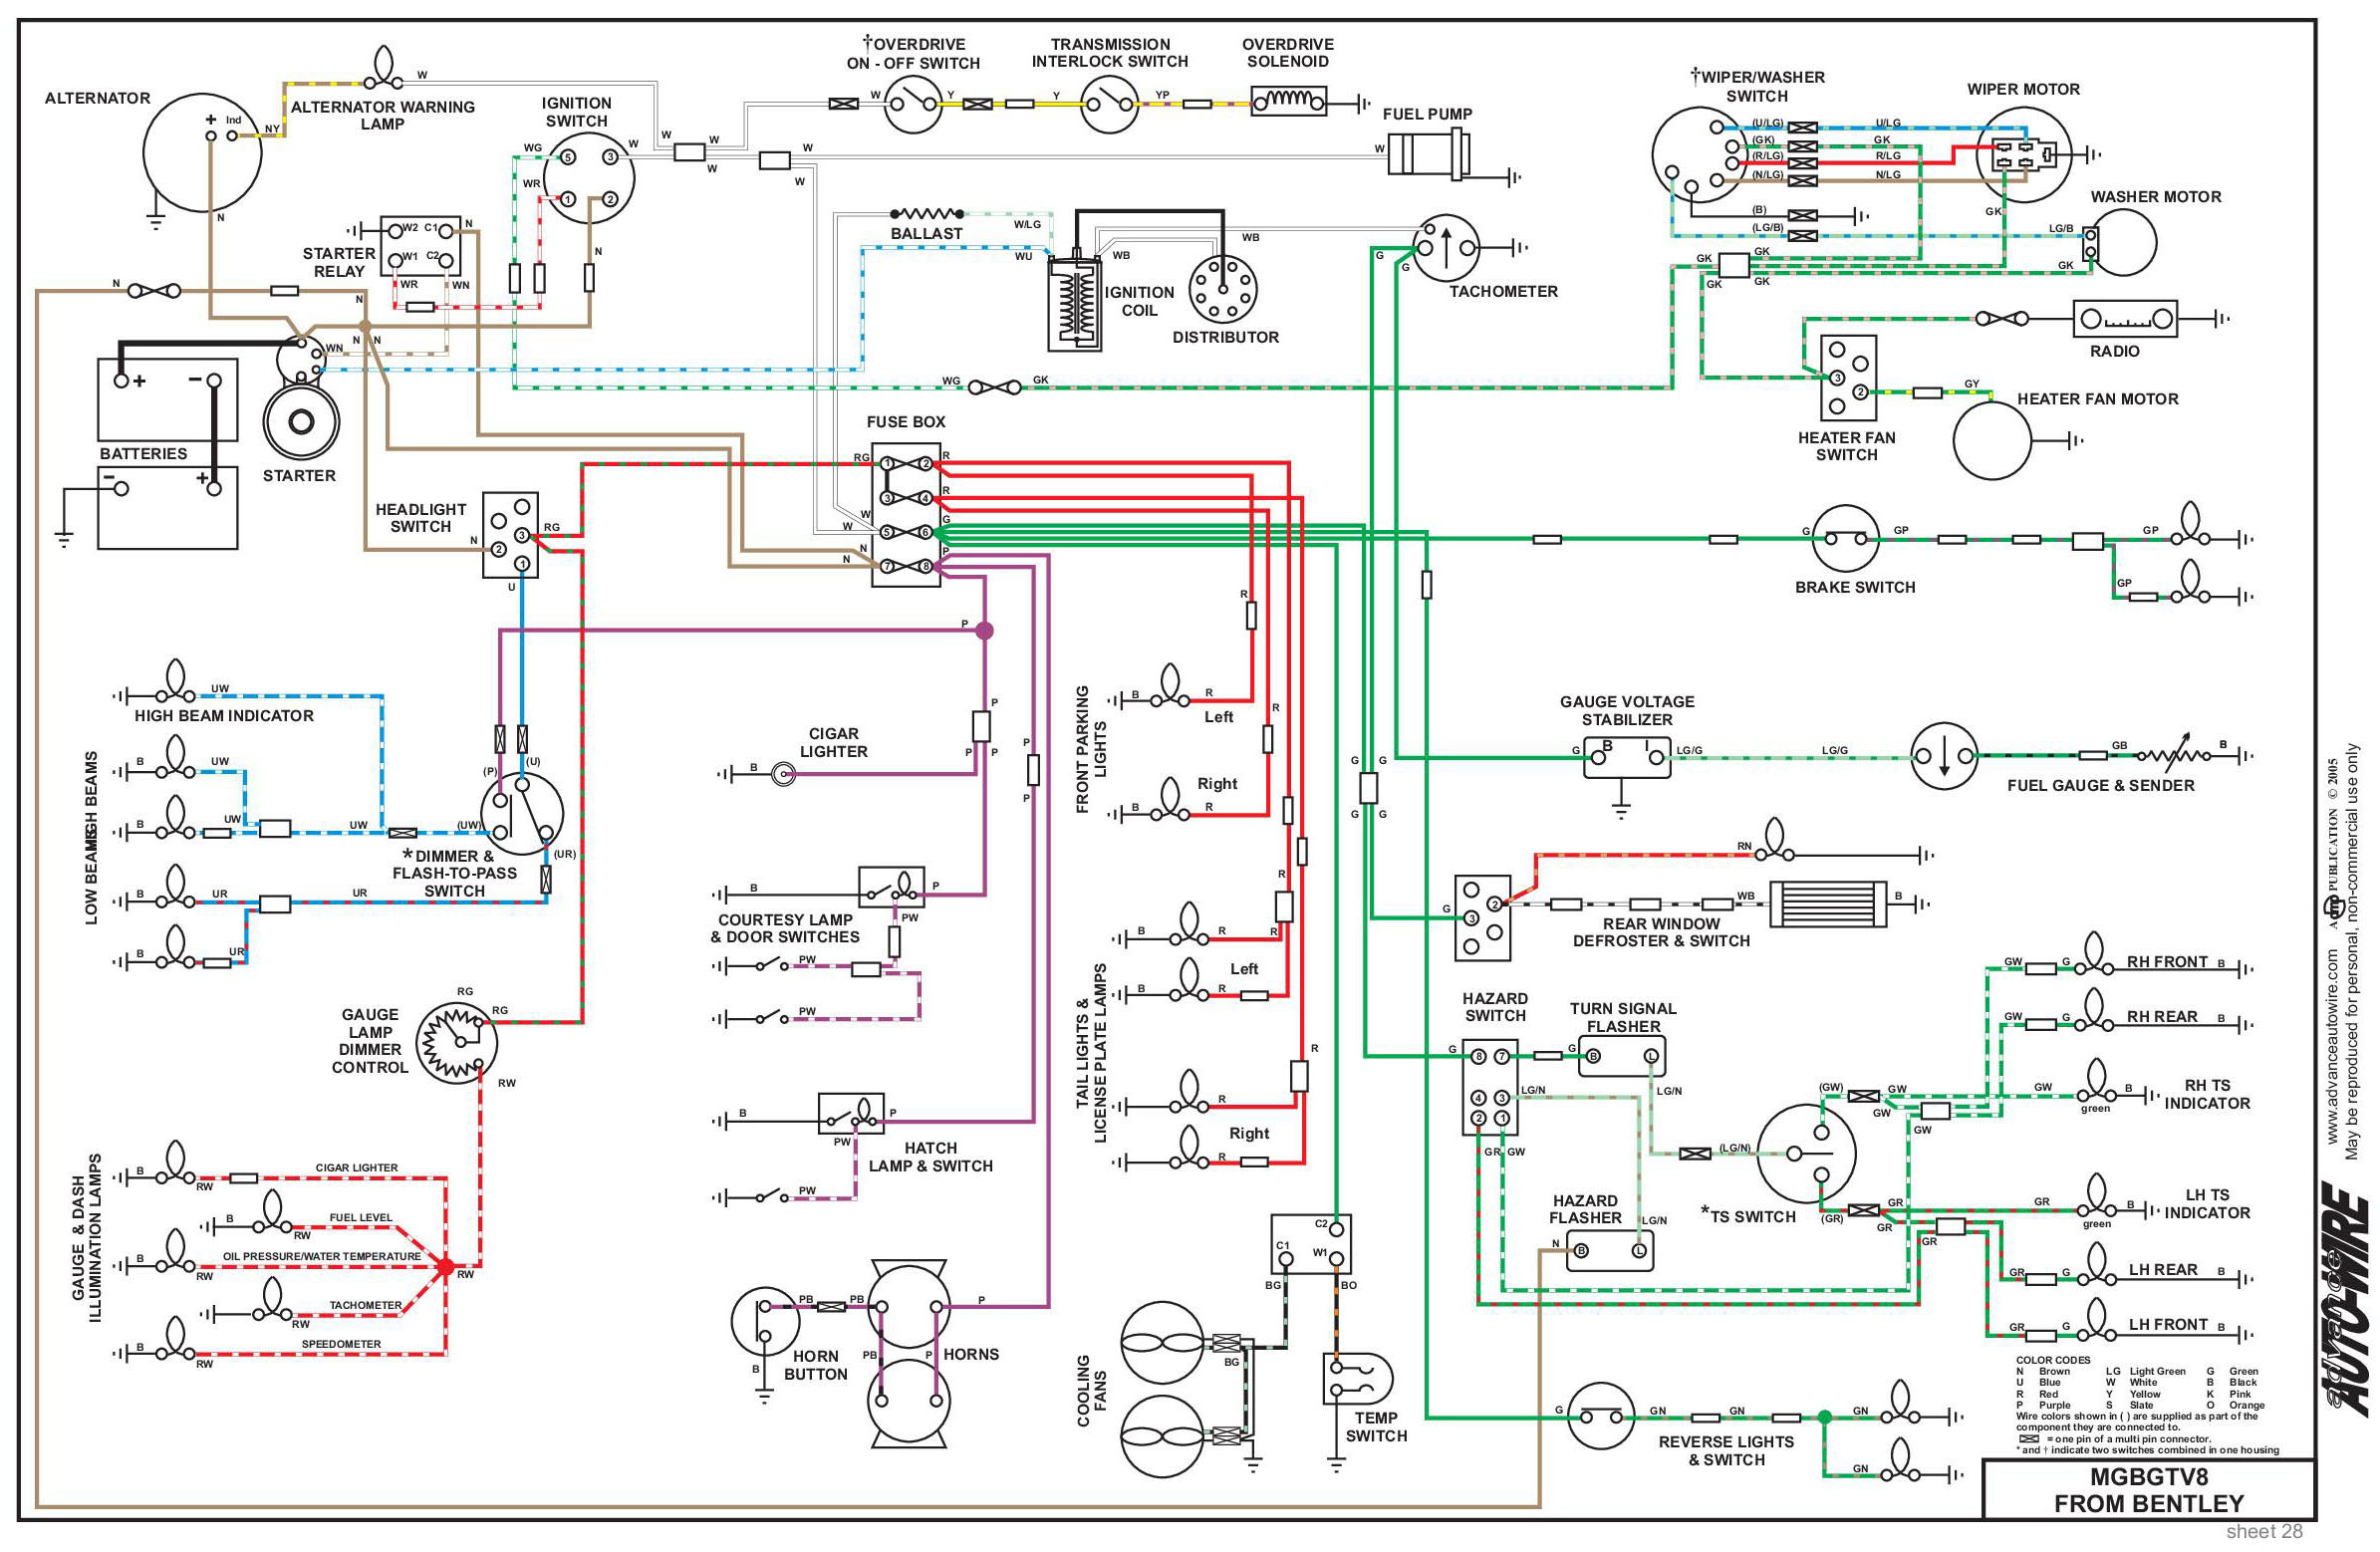 Electrical System 68 Camaro Wiring Harness Diagram 67 Wire Mgbgtv8 28 Uk